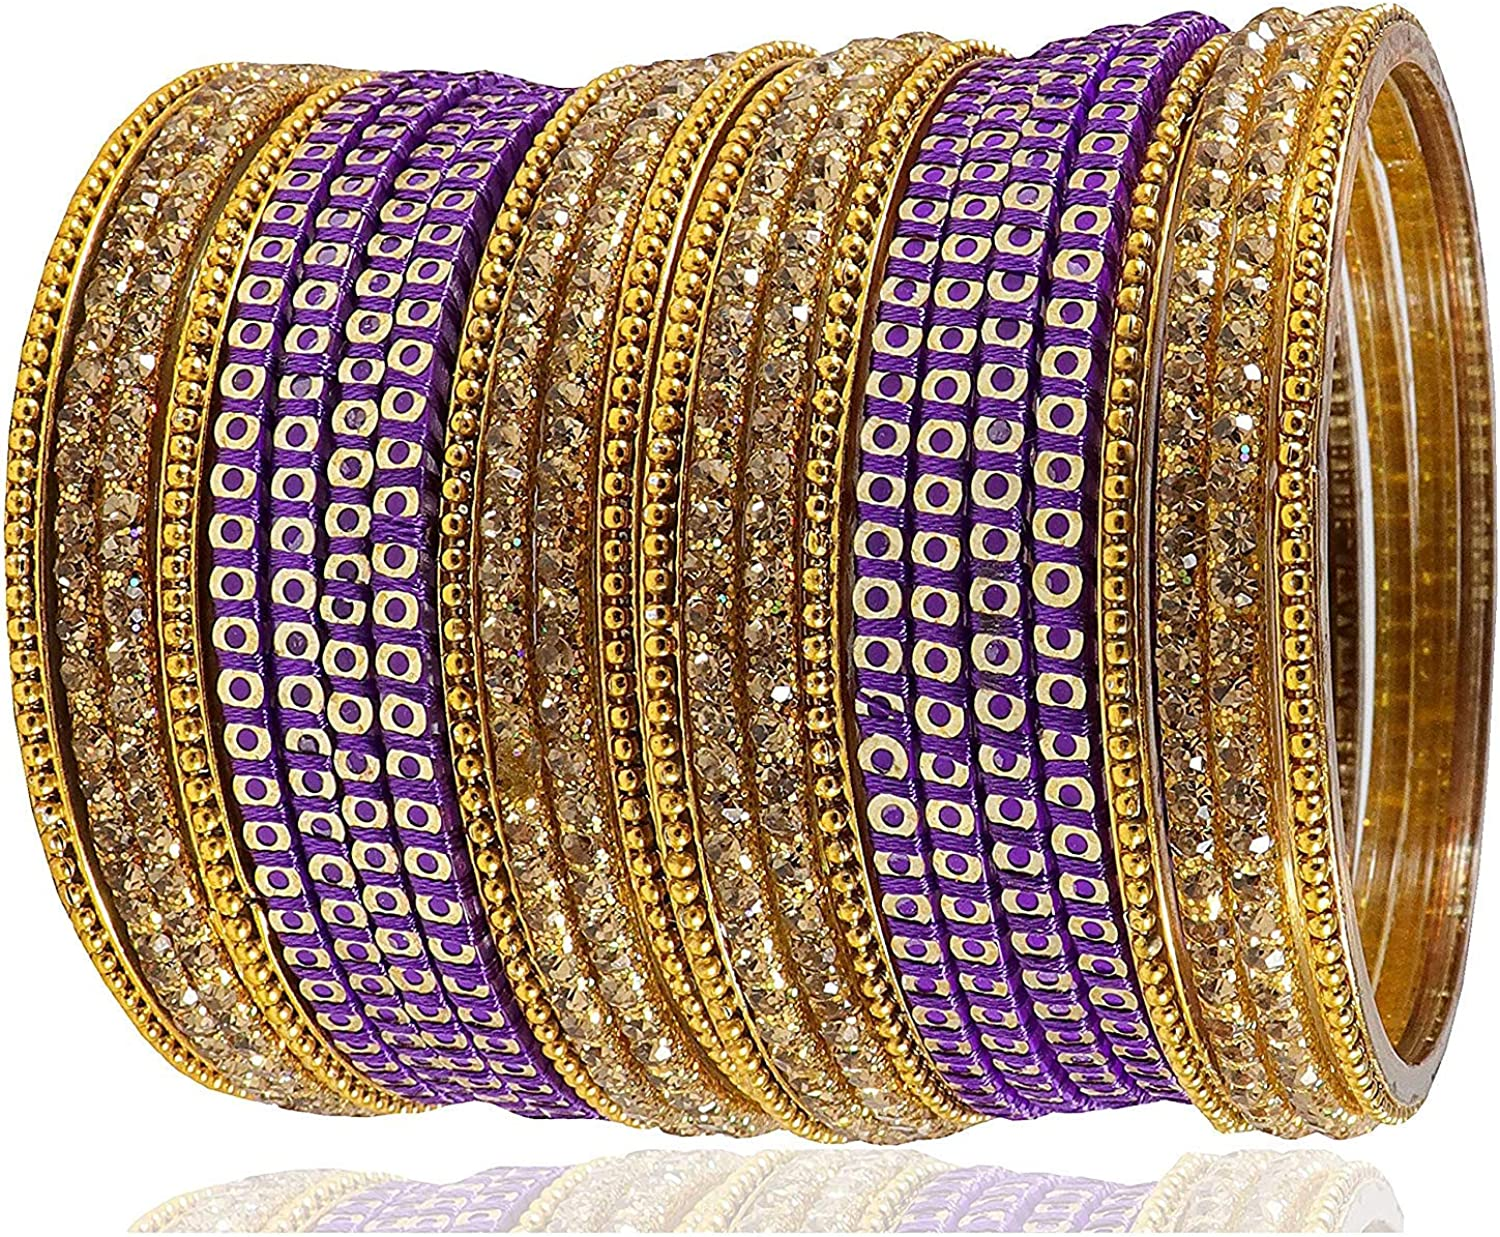 SHINE MILL Thread /& Glass Bangles Set Studded with Zircon for Girls /& Women on